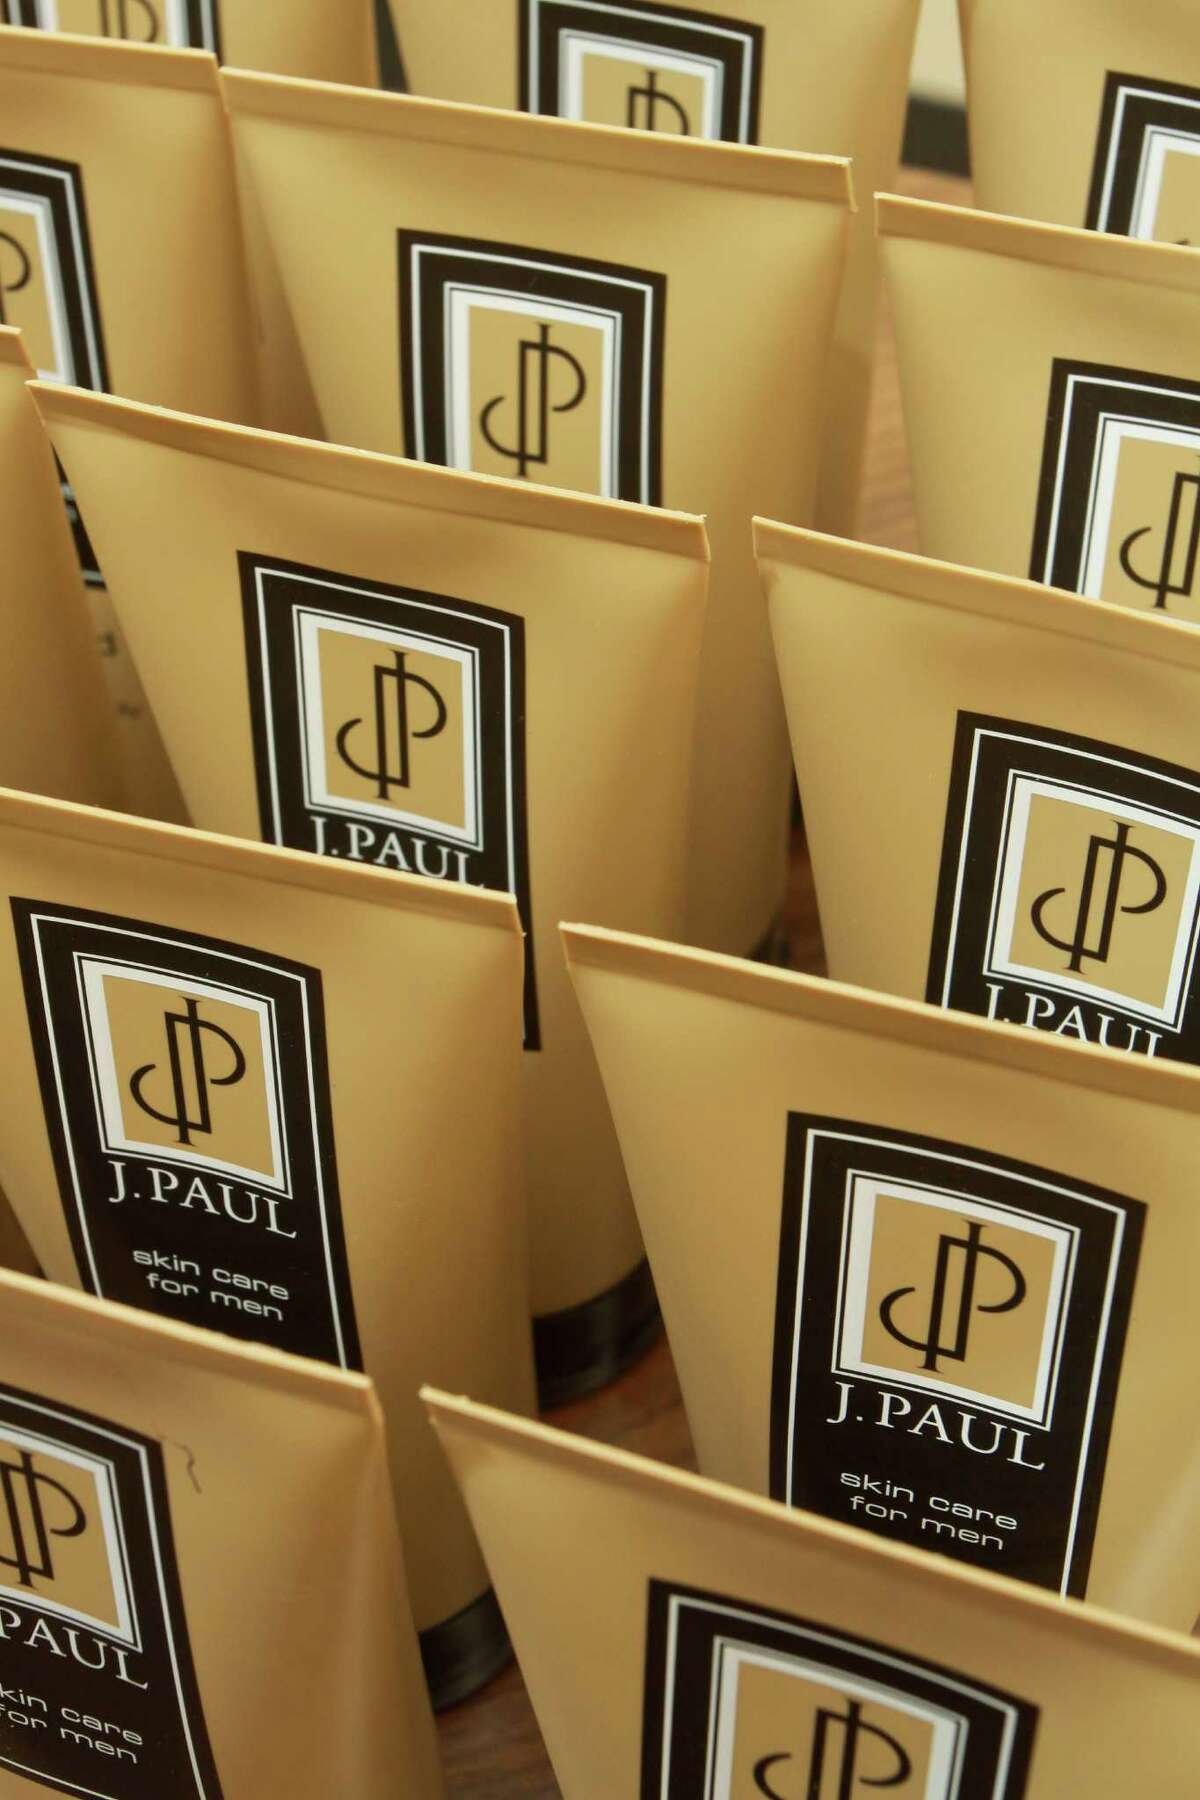 (For the Chronicle/Gary Fountain, September 4, 2012) Items from the product line of J. Paul Skincare, a skincare line for men.